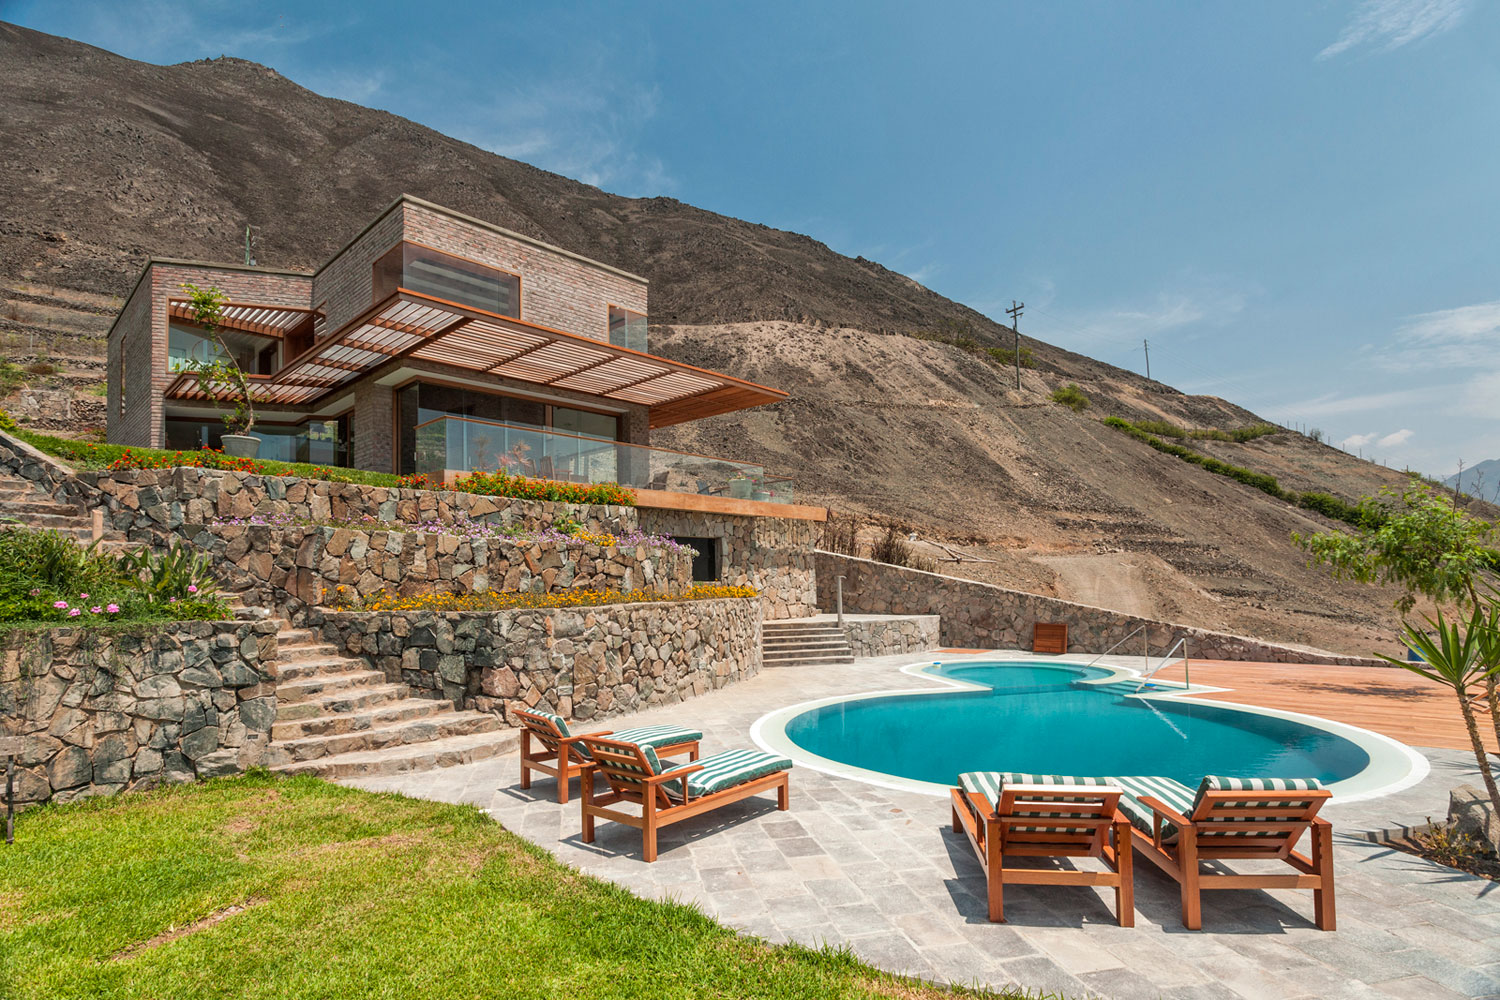 A Stunning Private Residence in the Azpitia Valley in Peru